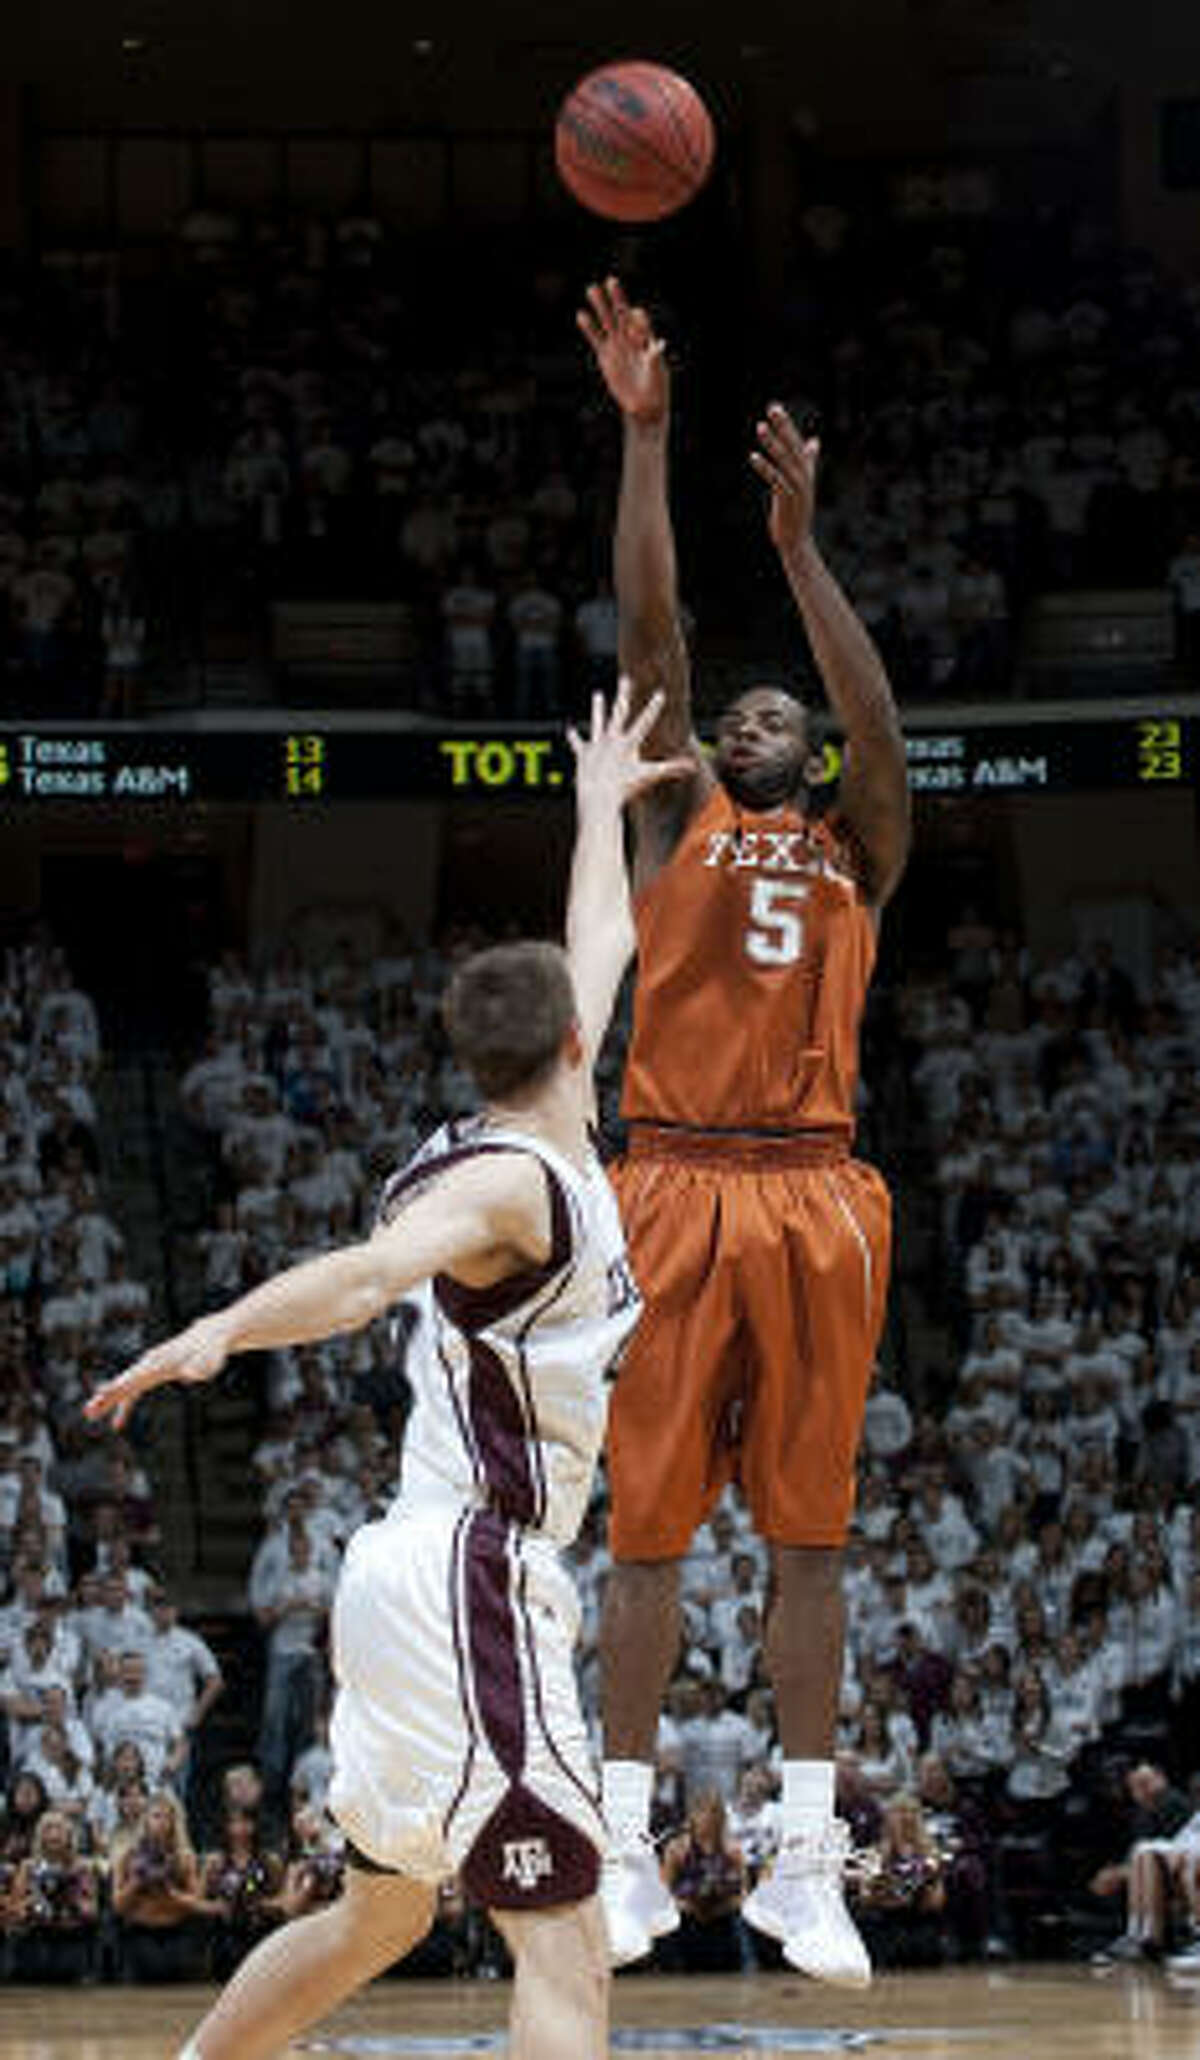 Texas' Damion James (5) shoots a 3-pointer over Texas A&M's Nathan Walkup during the second half.